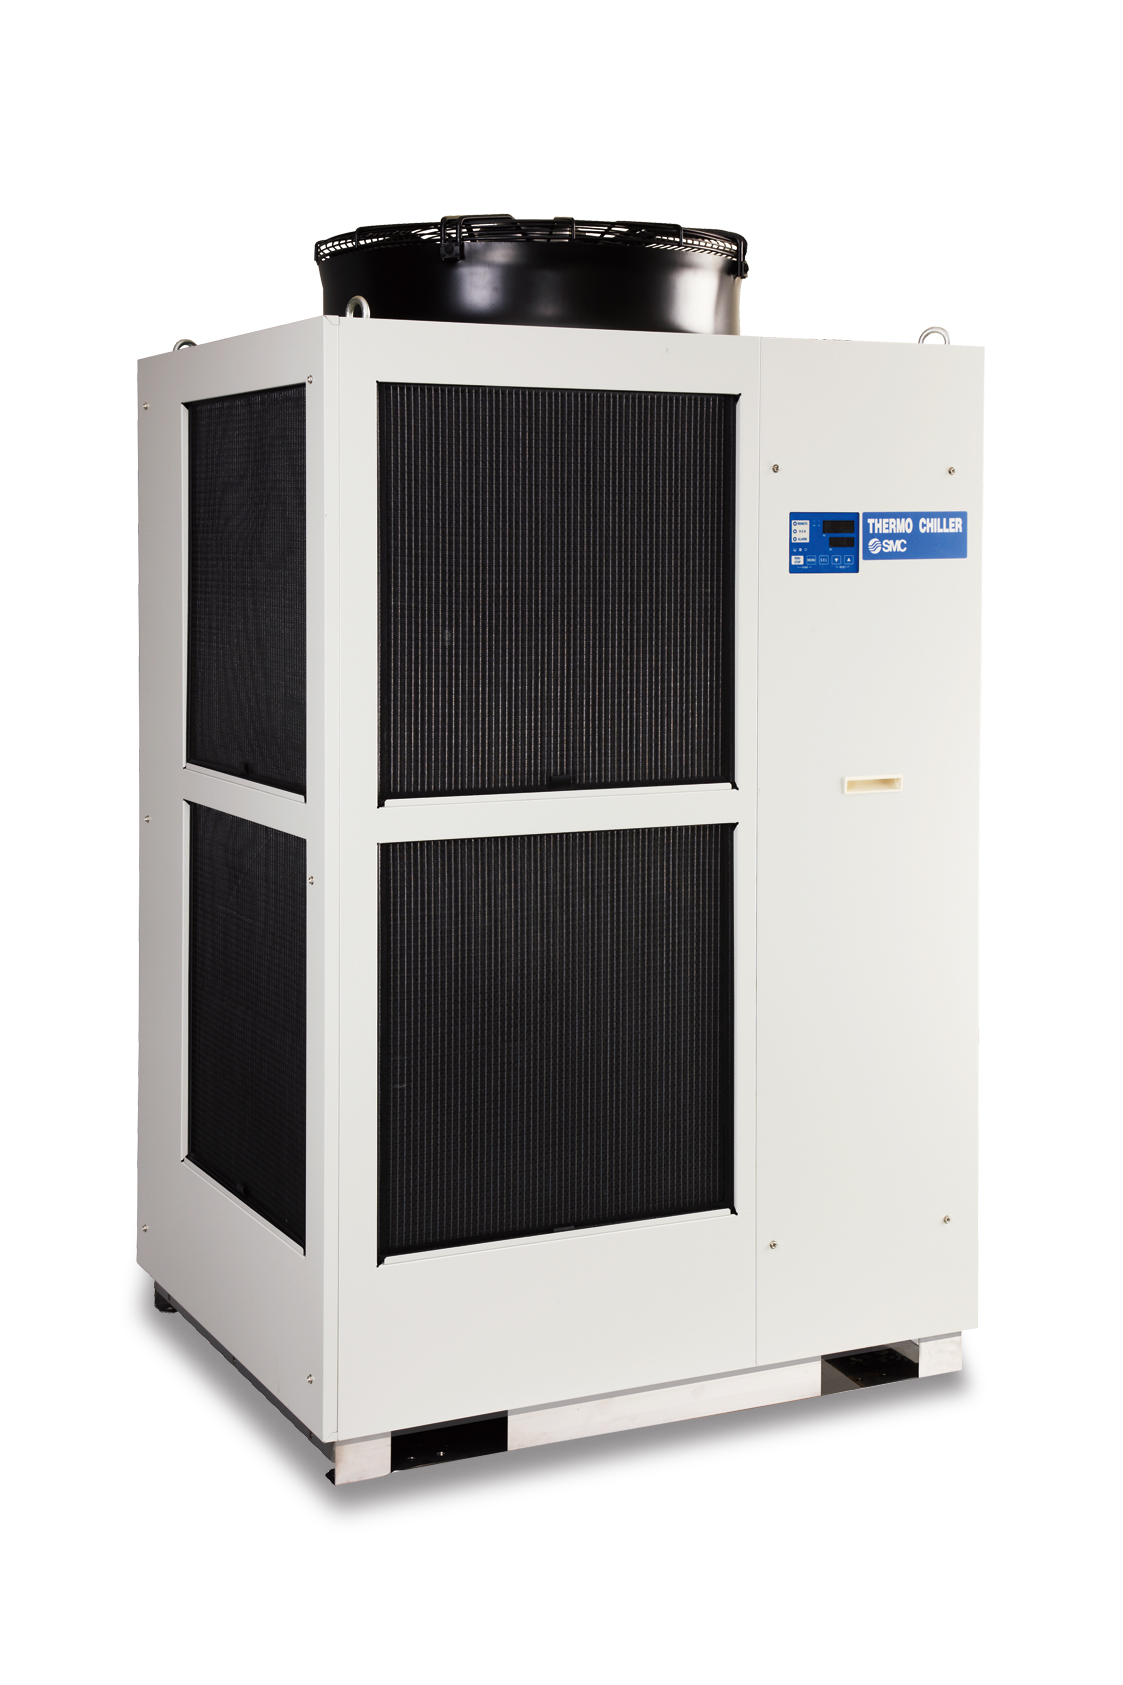 SMC Thermo-Chiller HRSH